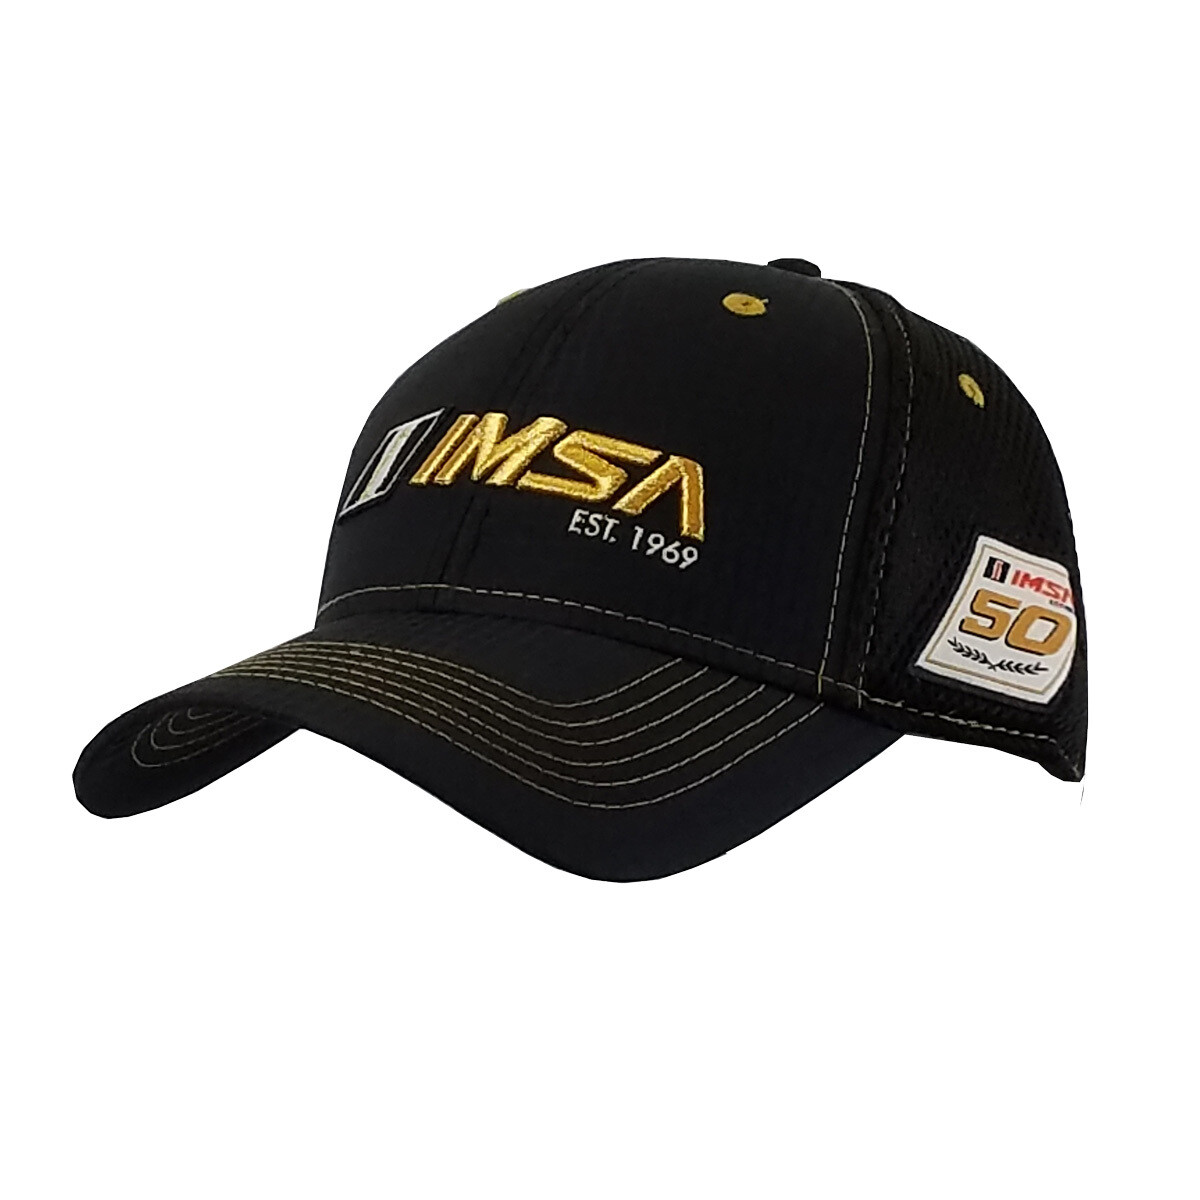 IMSA 1969 Golden Anniversary Air Mesh Hat - Black